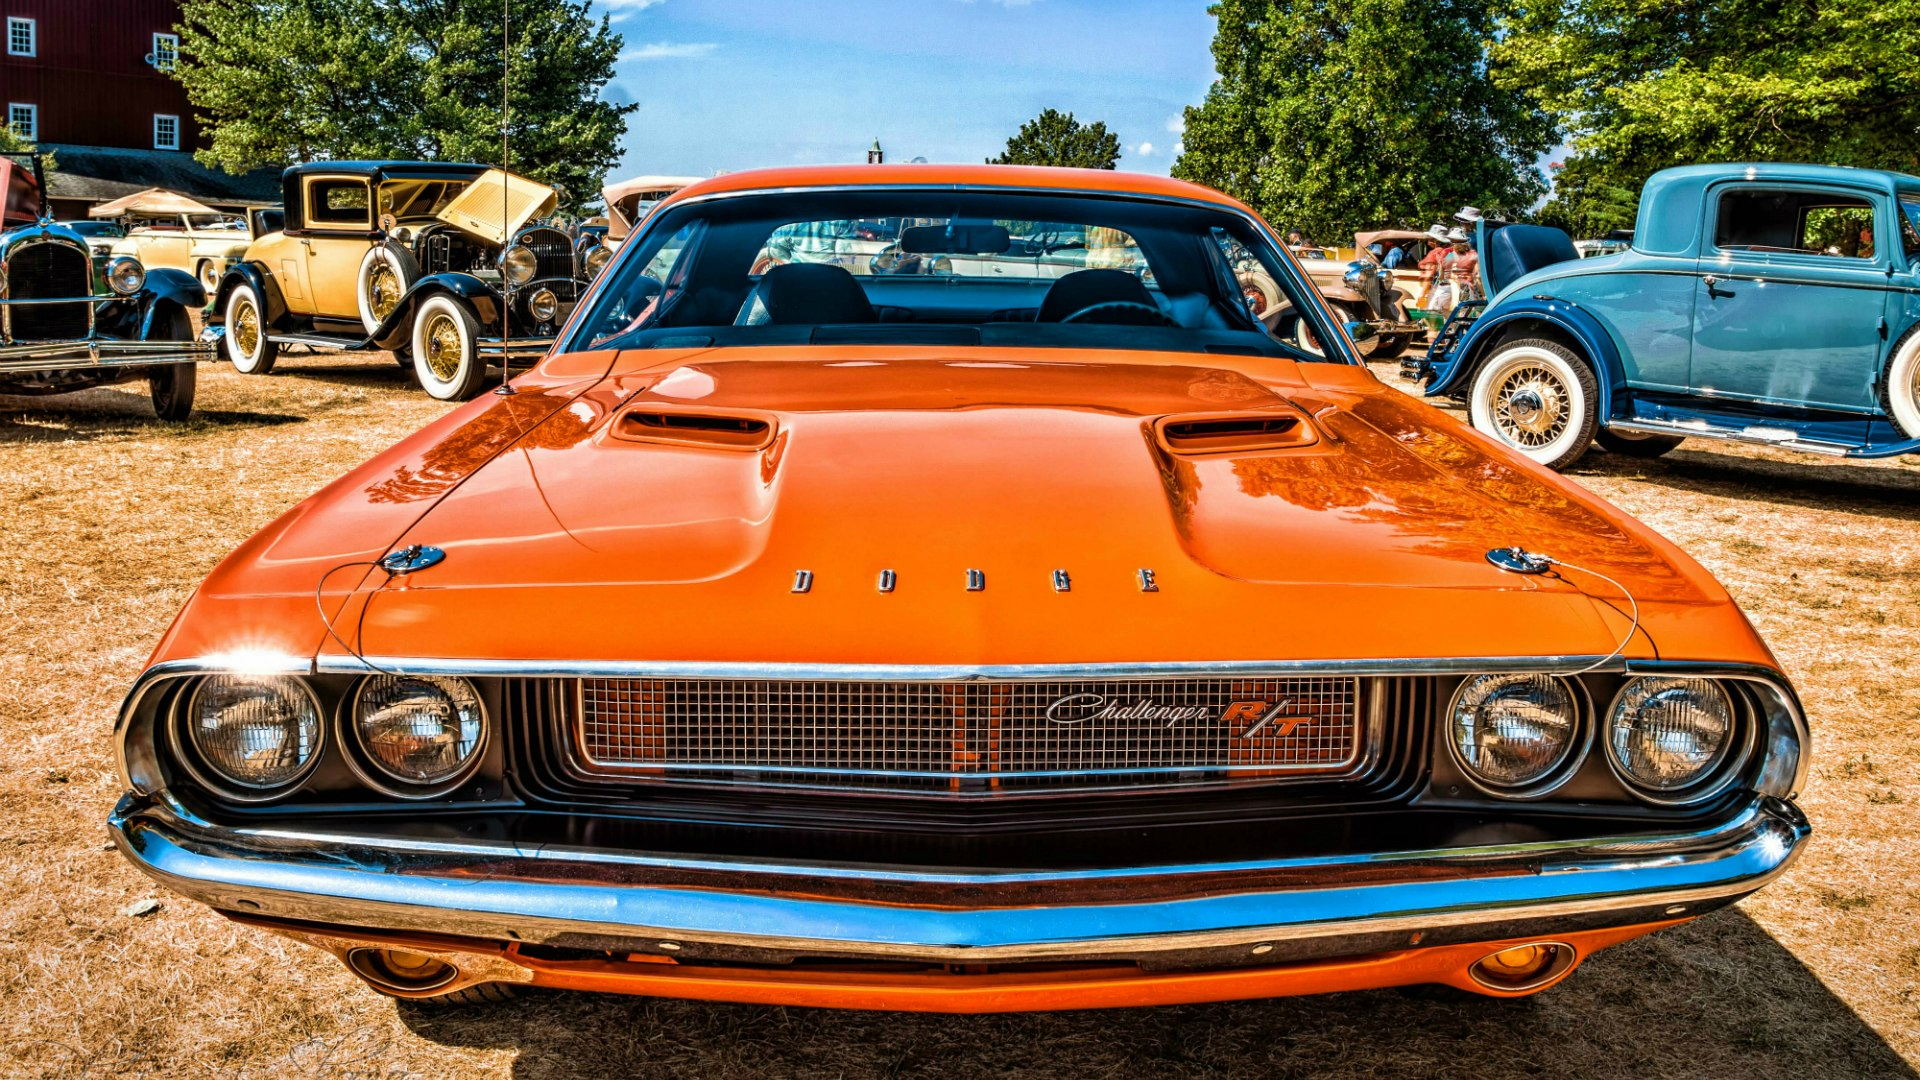 Dodge Challenger Classic, HD Cars, 4k Wallpapers, Images ...